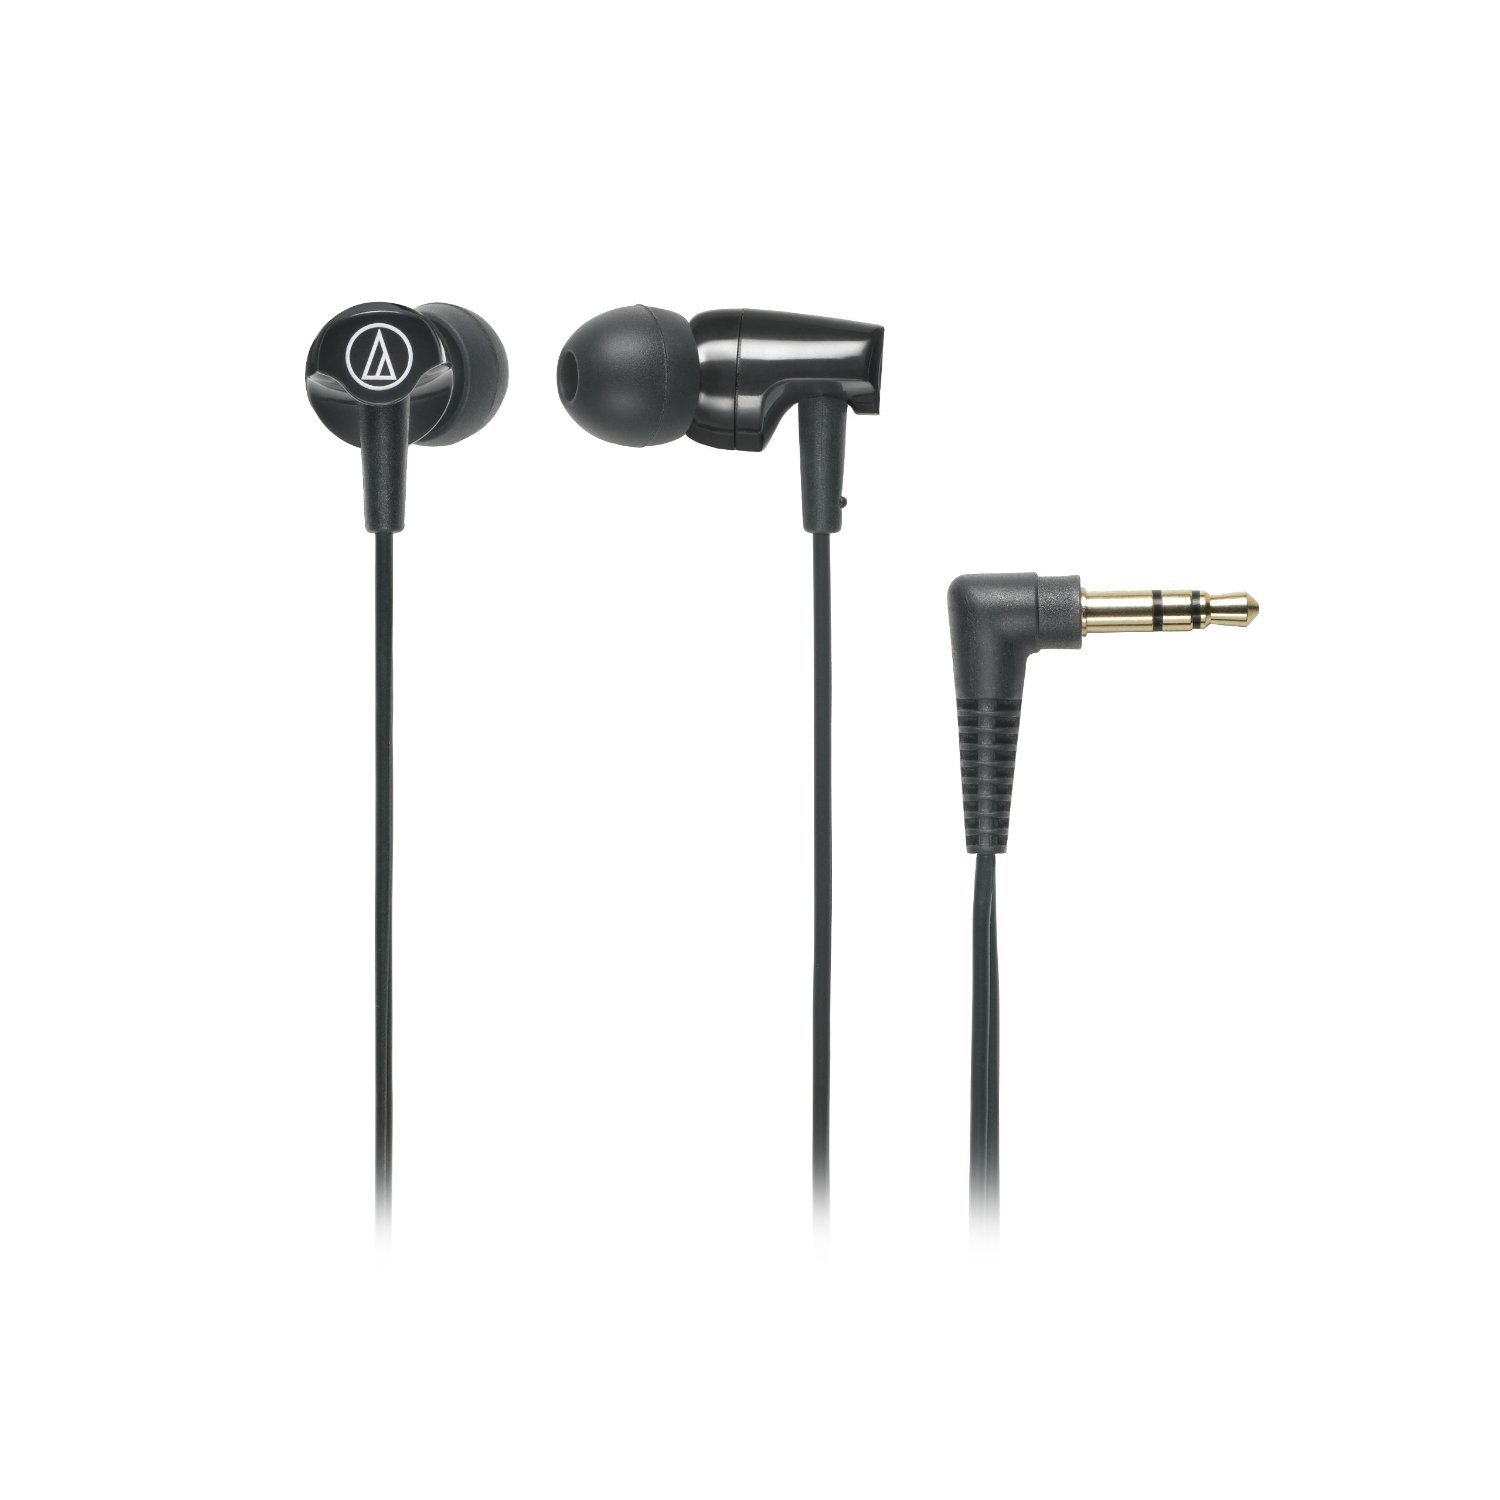 457d98af8e0 AUDIO TECHNICA ATH-CLR100BK IN-EAR HEADPHONES Reviews, AUDIO ...